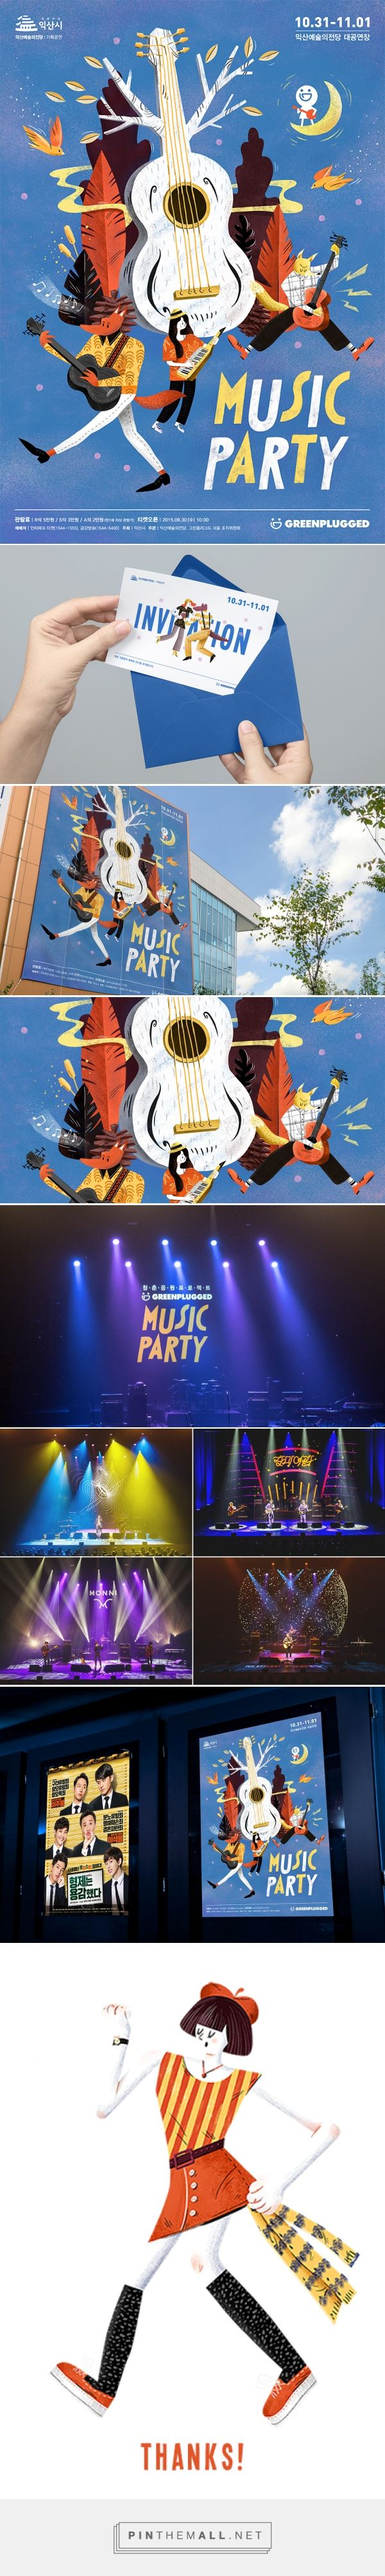 Iksan Music Party concert 2016 by greenplugged on Behance - created via https://pinthemall.net